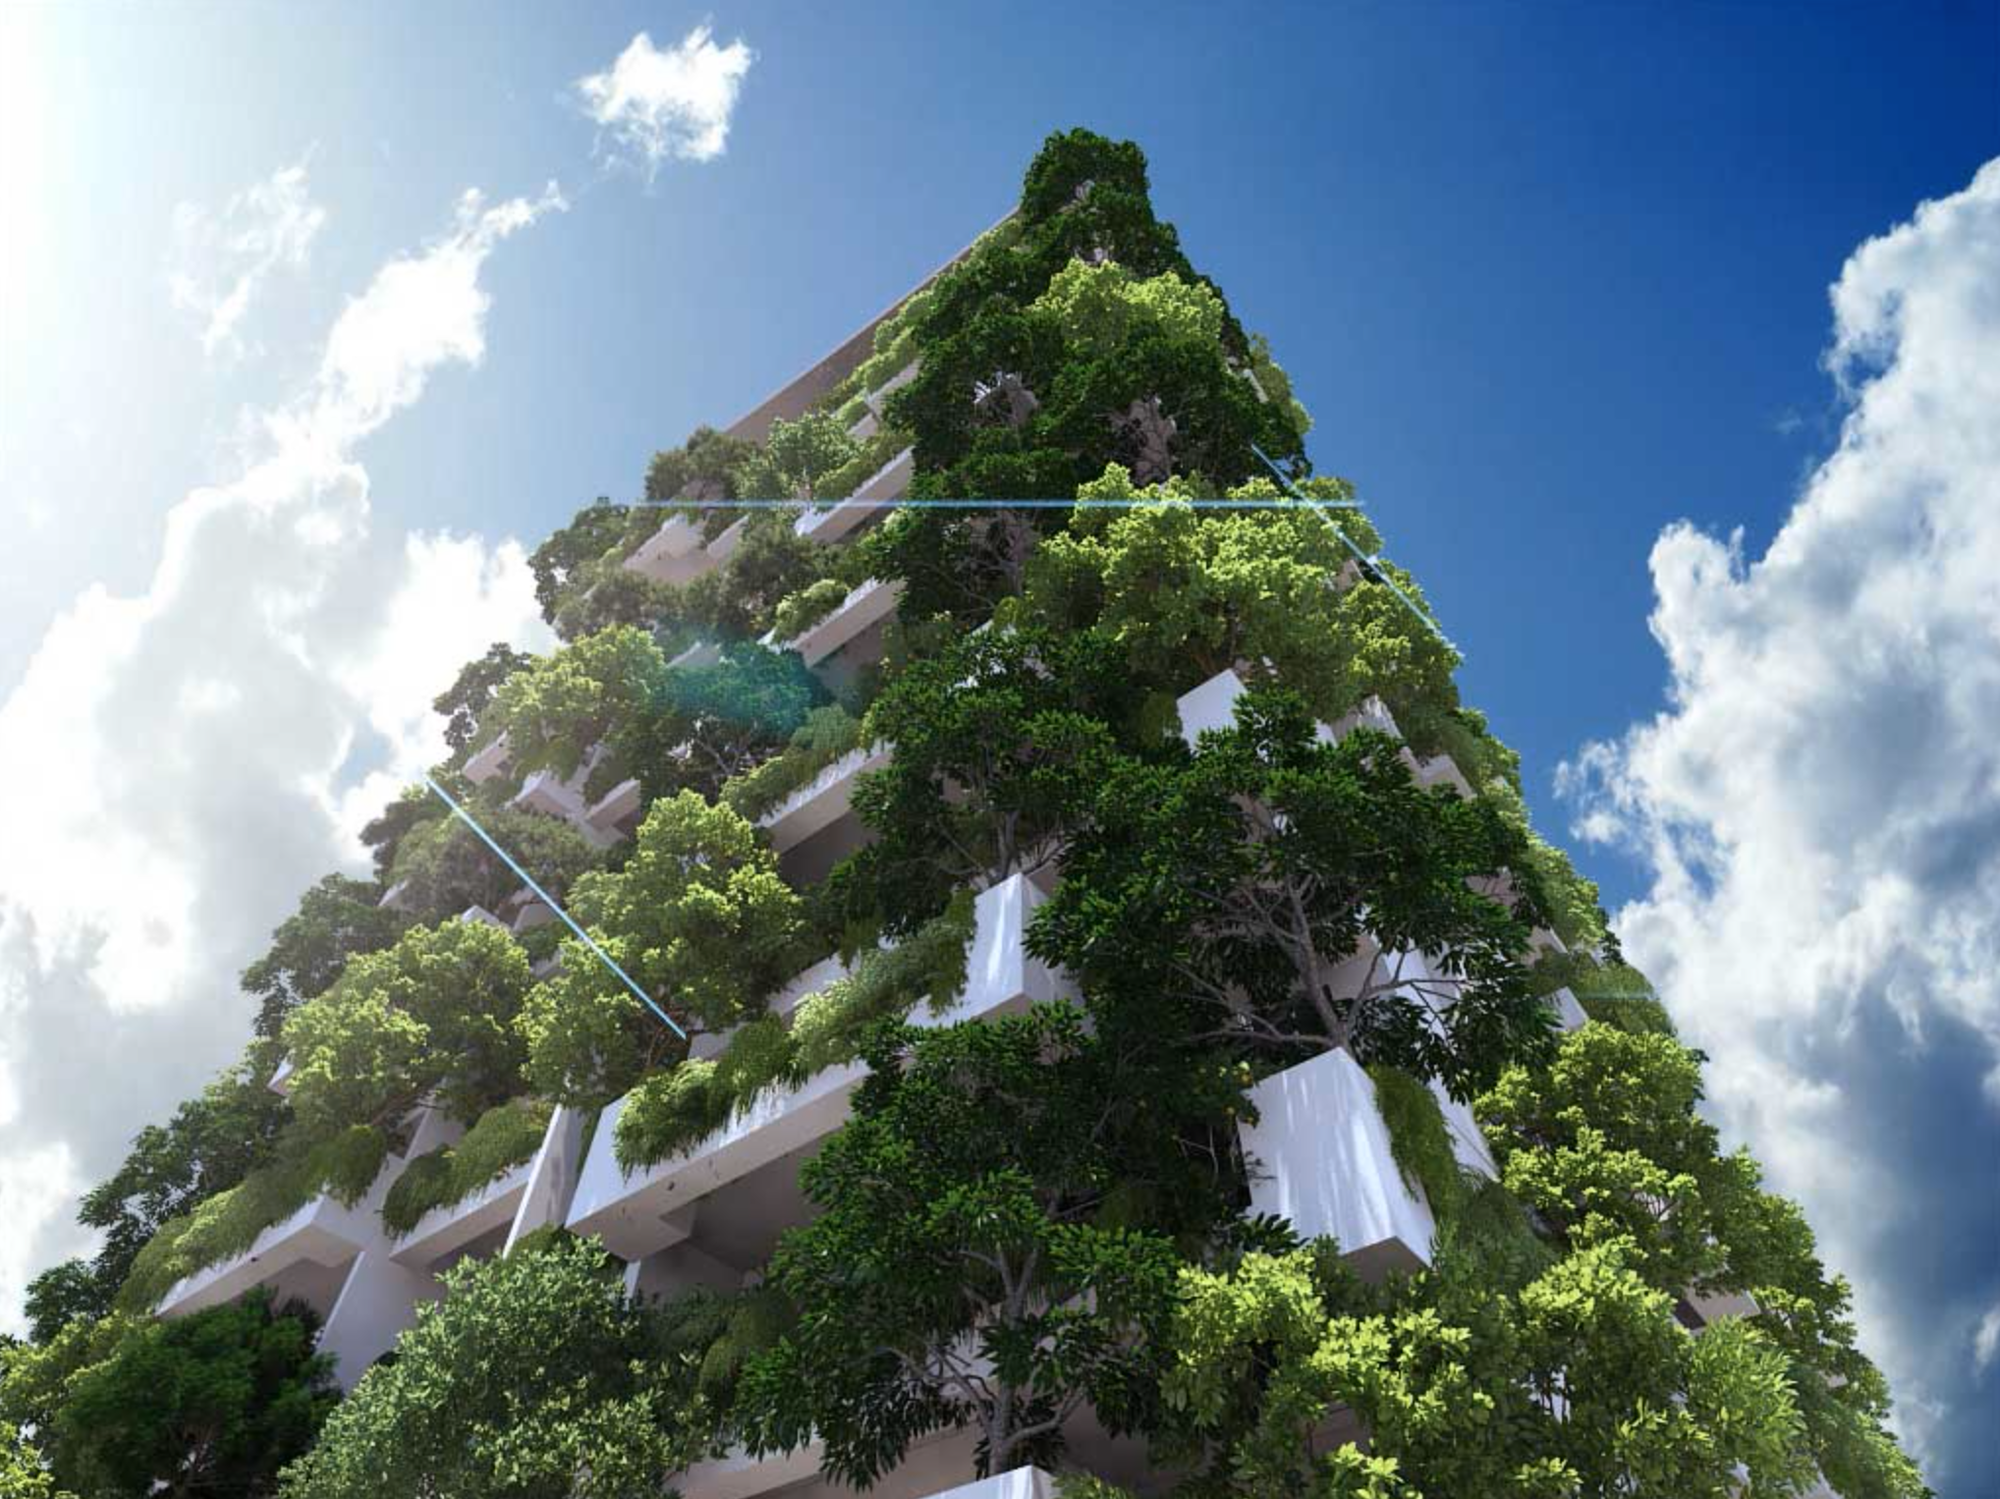 Milroy Perera Designs World's Tallest Residential Vertical Garden, Courtesy of Clearpoint / Milroy Perera